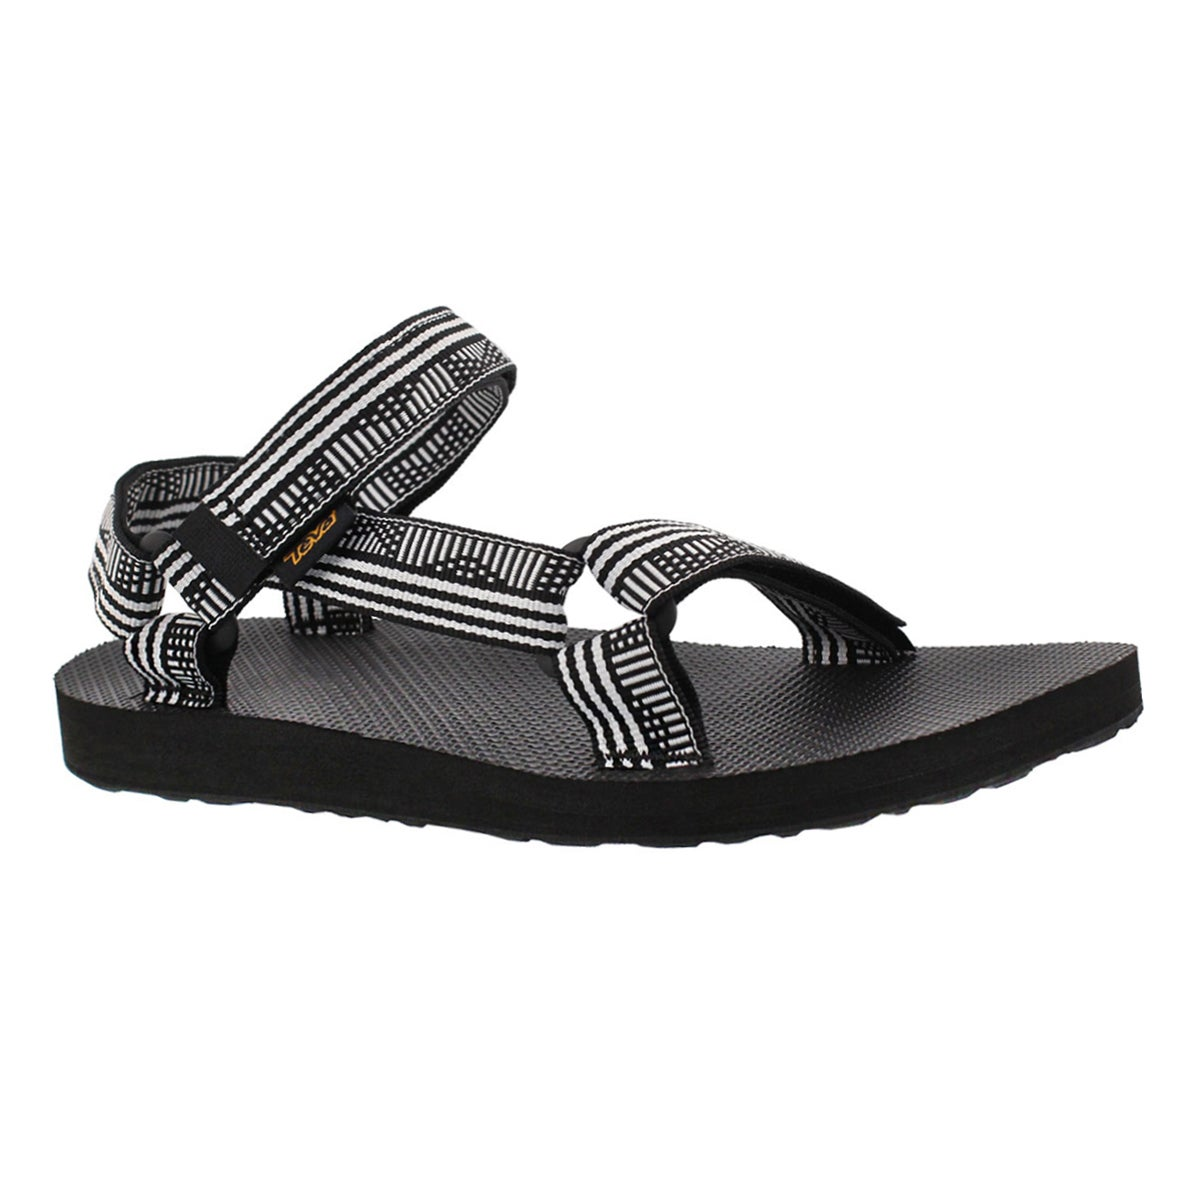 Women's ORIGINAL UNIVERSAL blk/white sport sandals